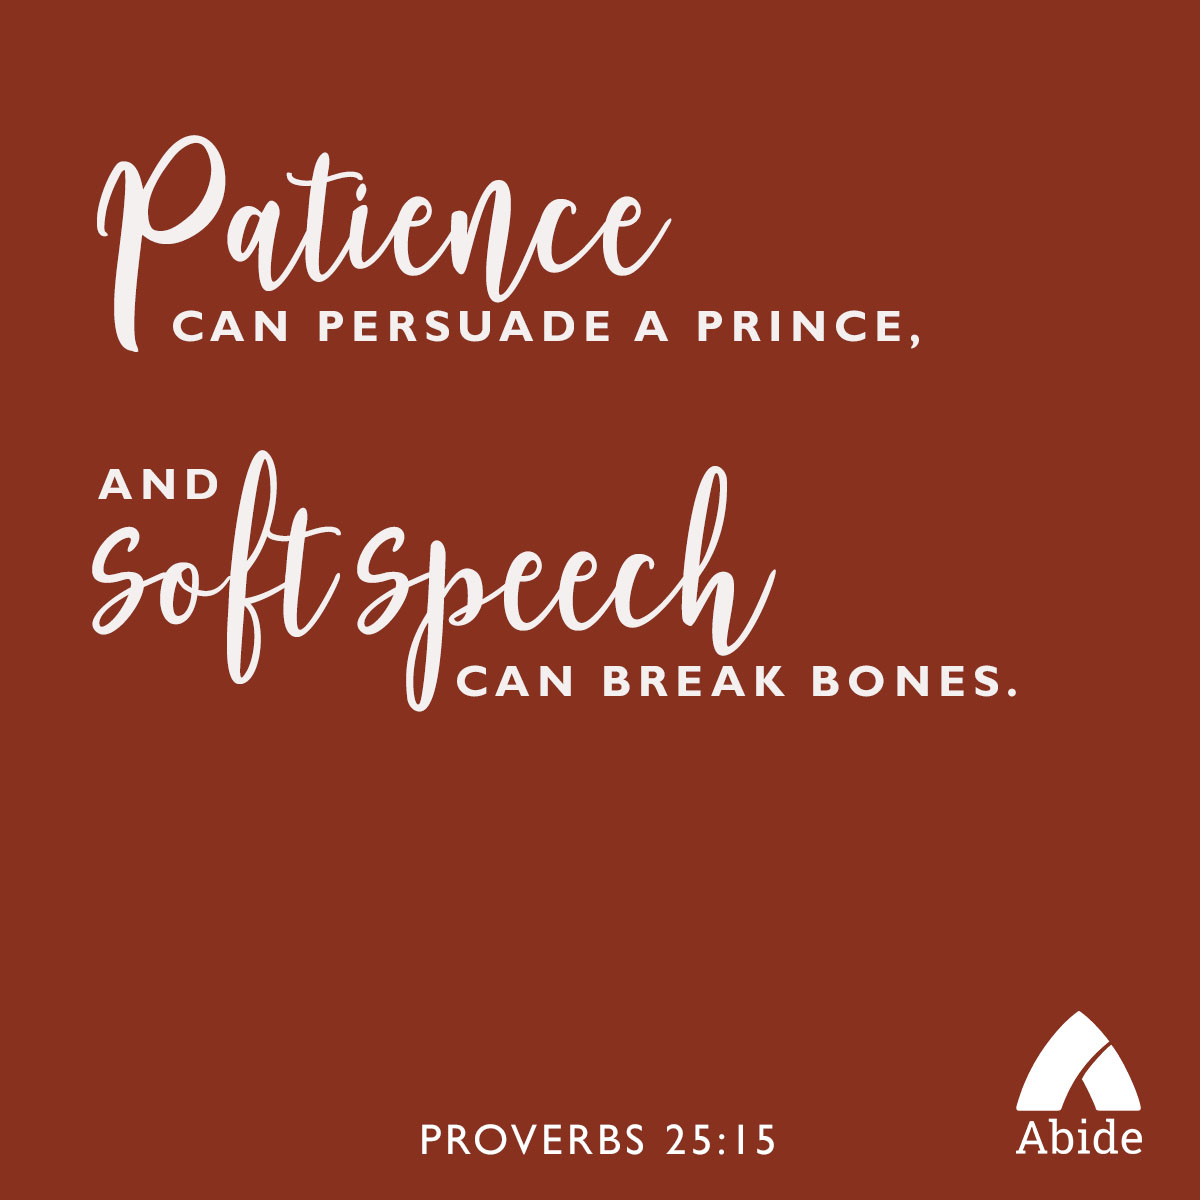 Find Peace with Abide